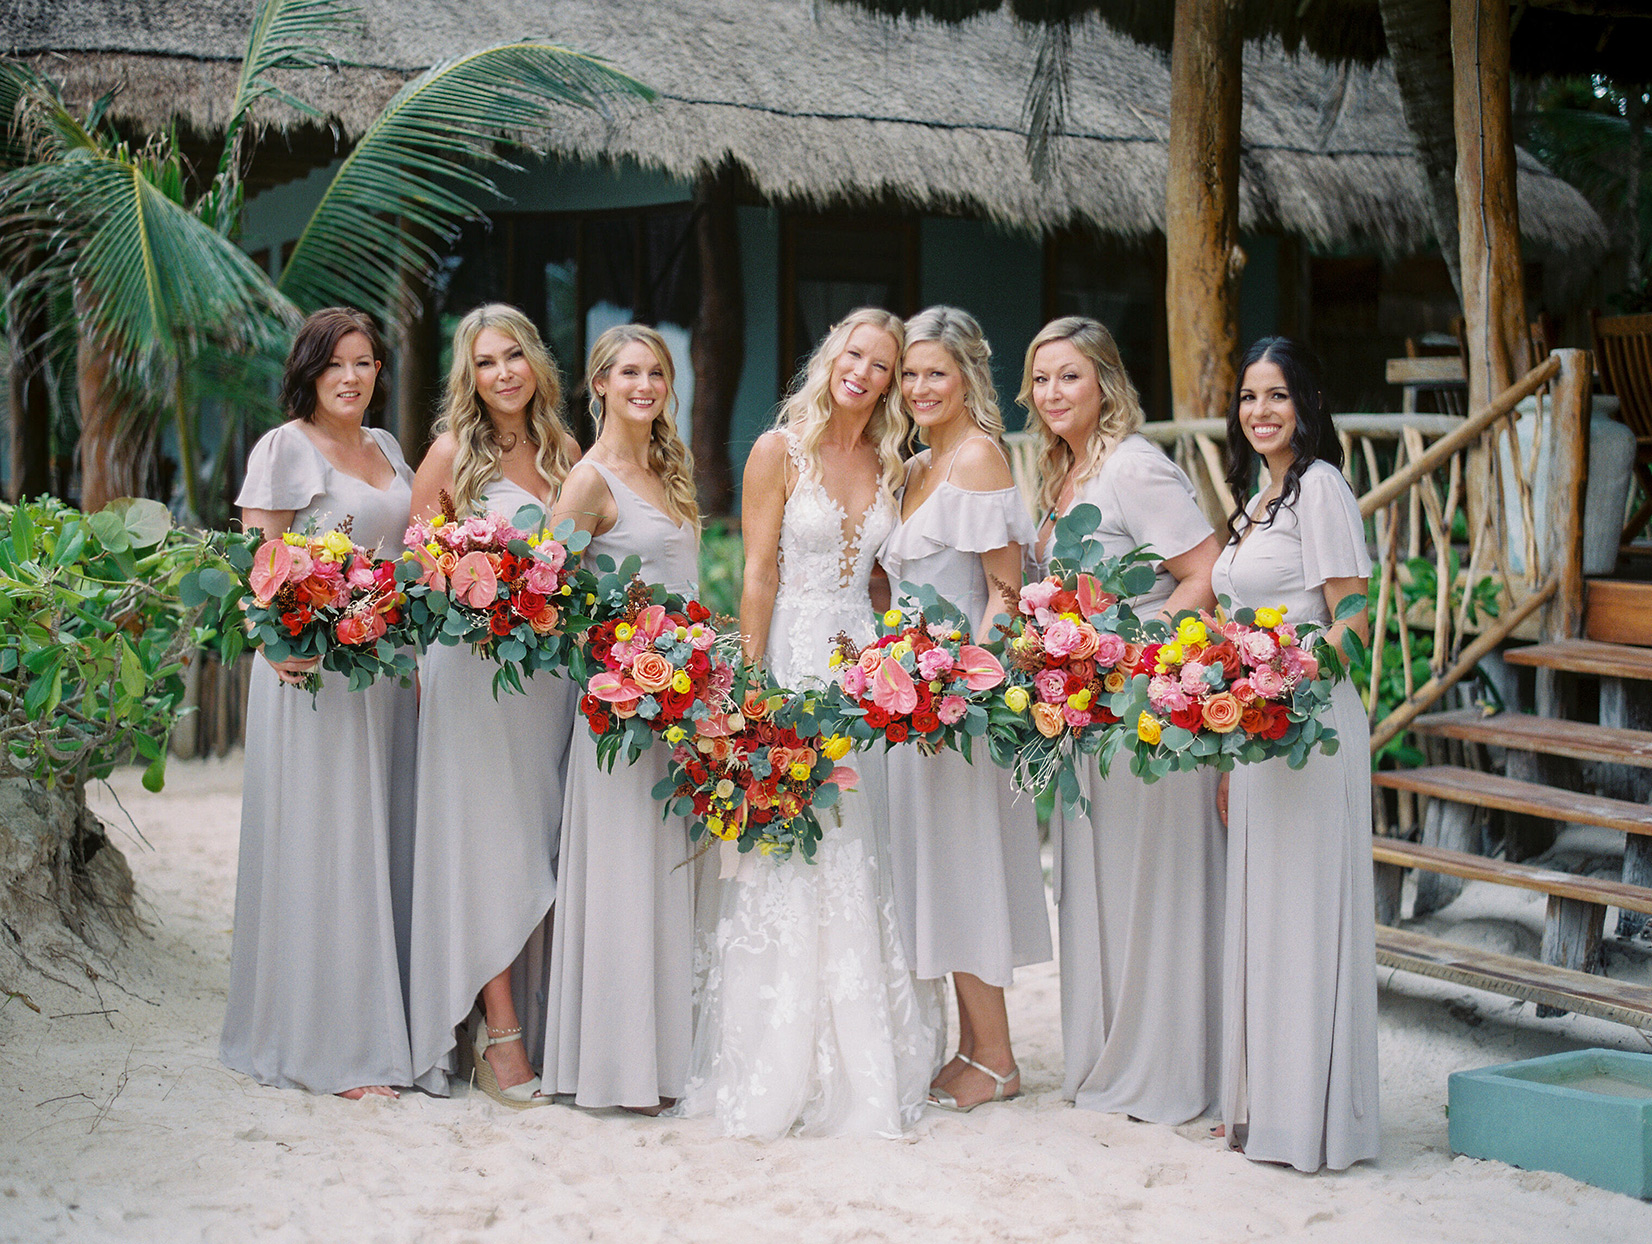 bride and bridesmaids in light gray holding red and yellow bouquets